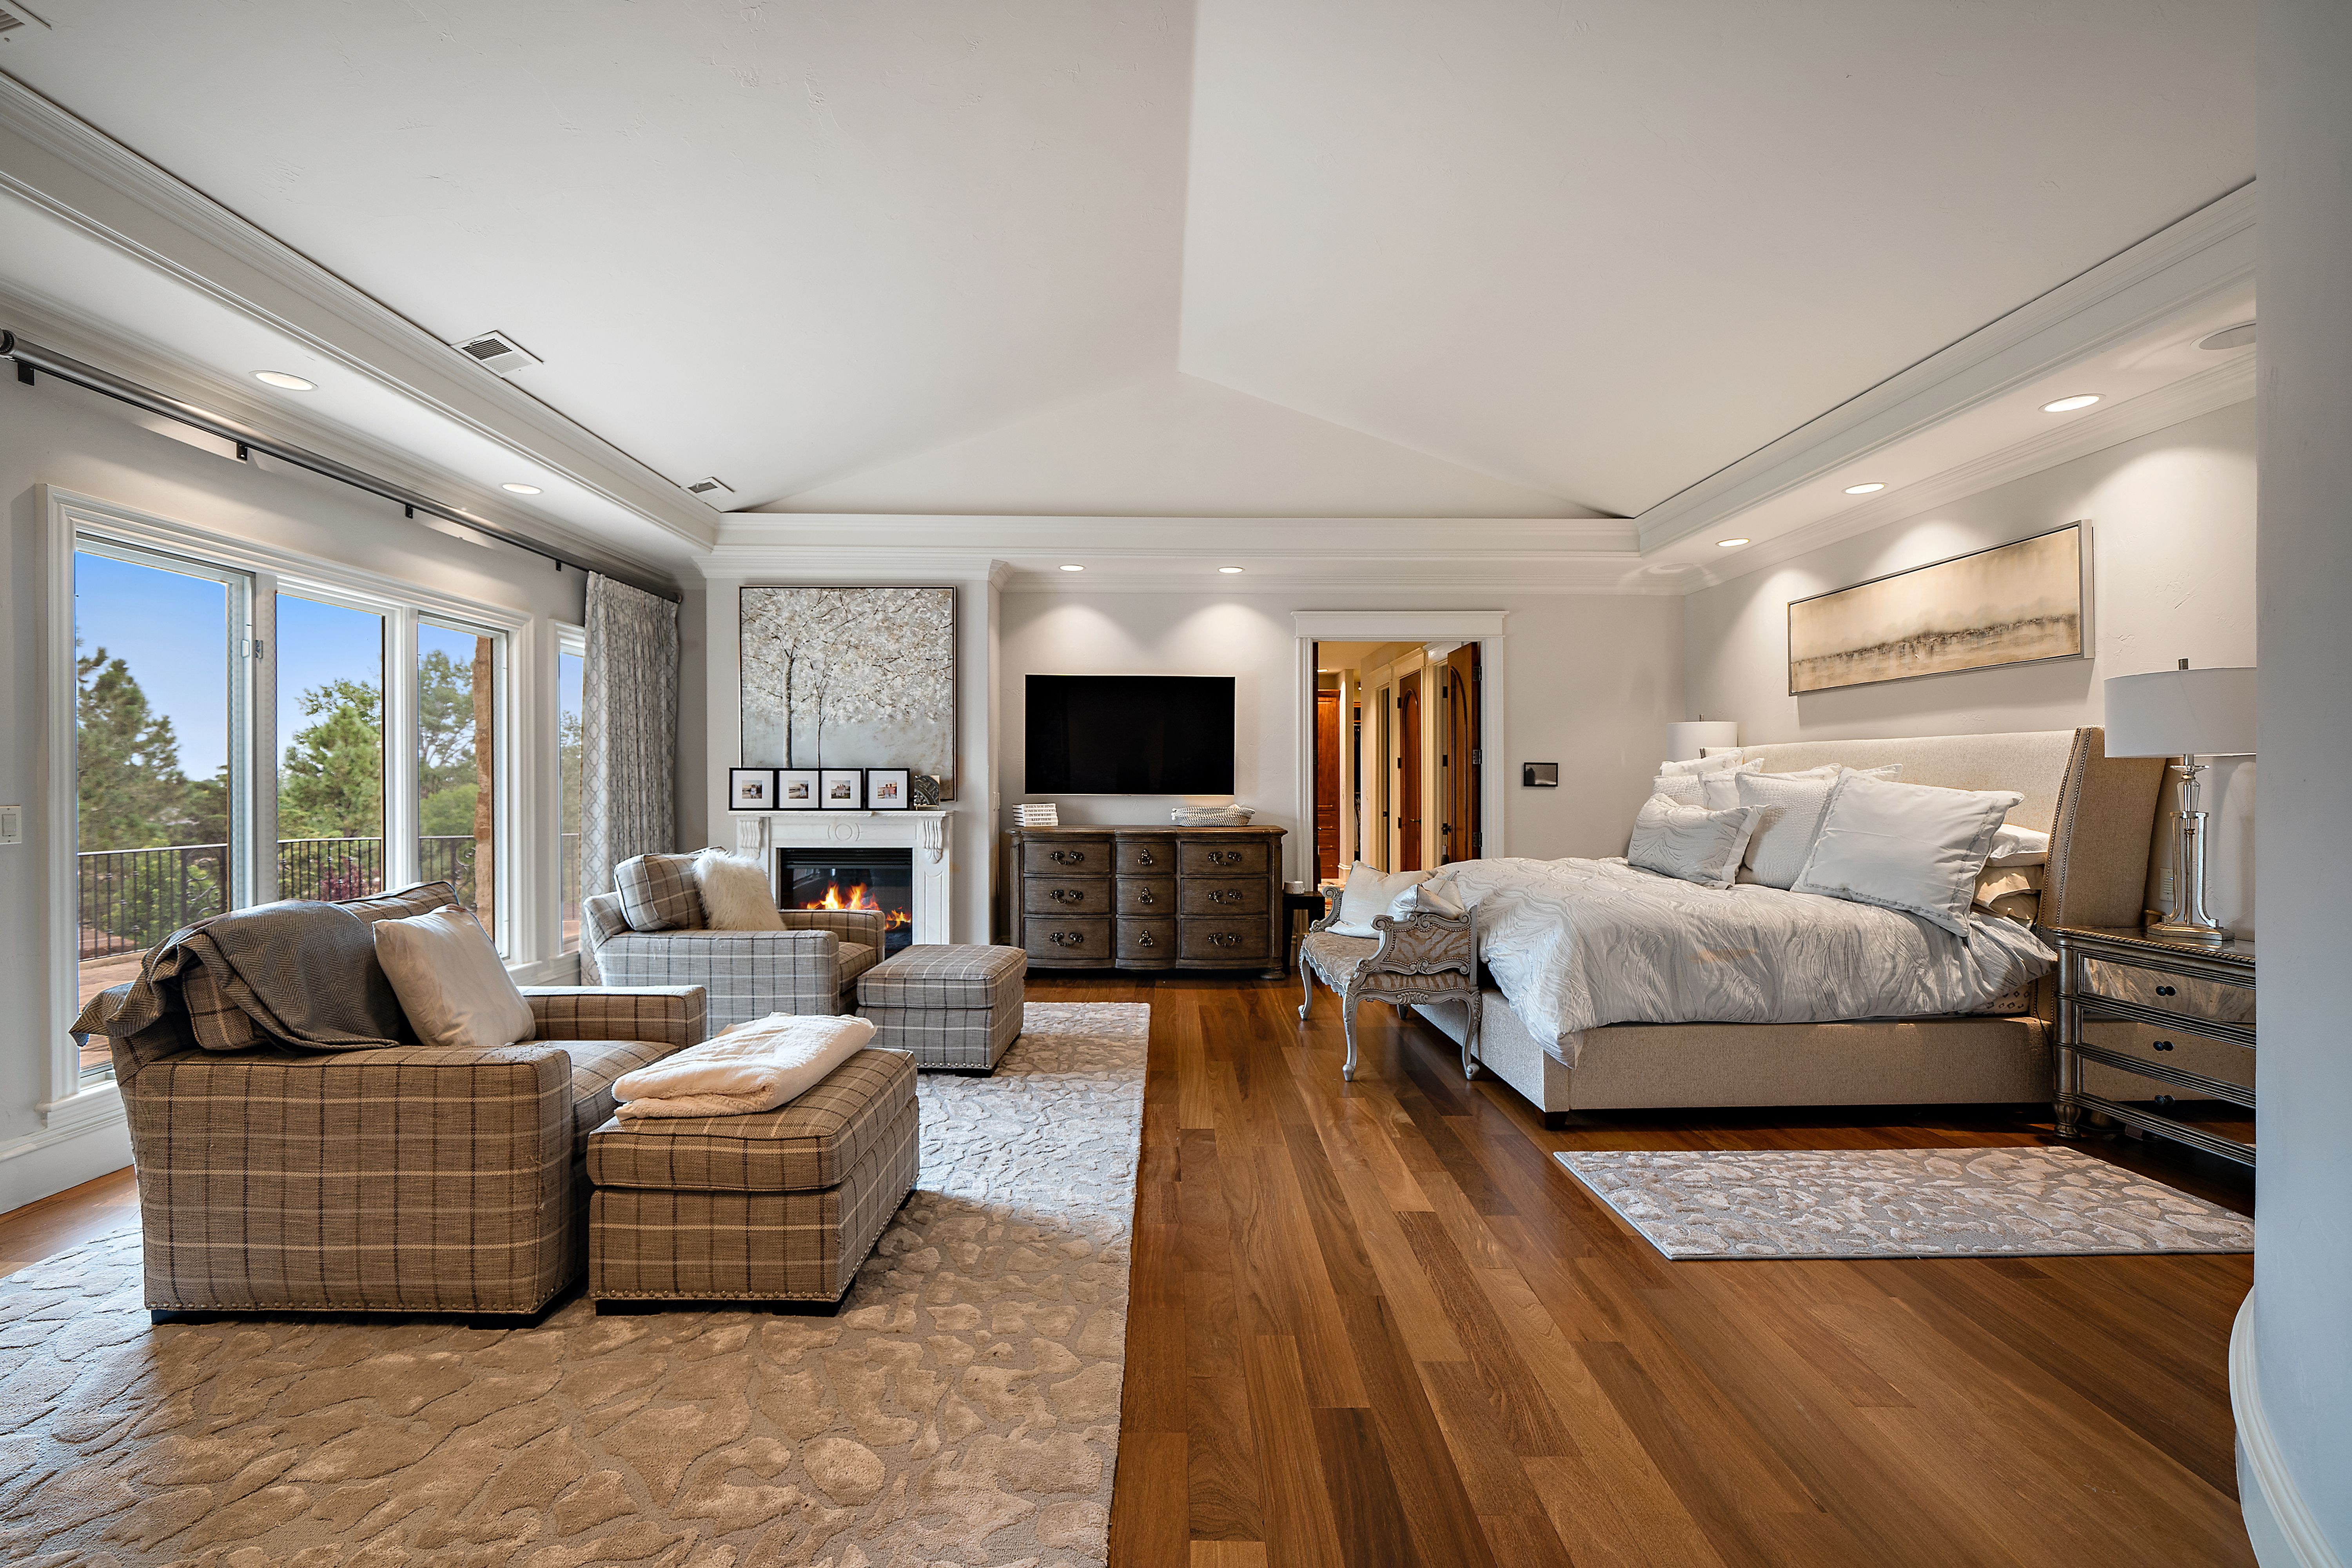 A large bedroom with a fireplace.